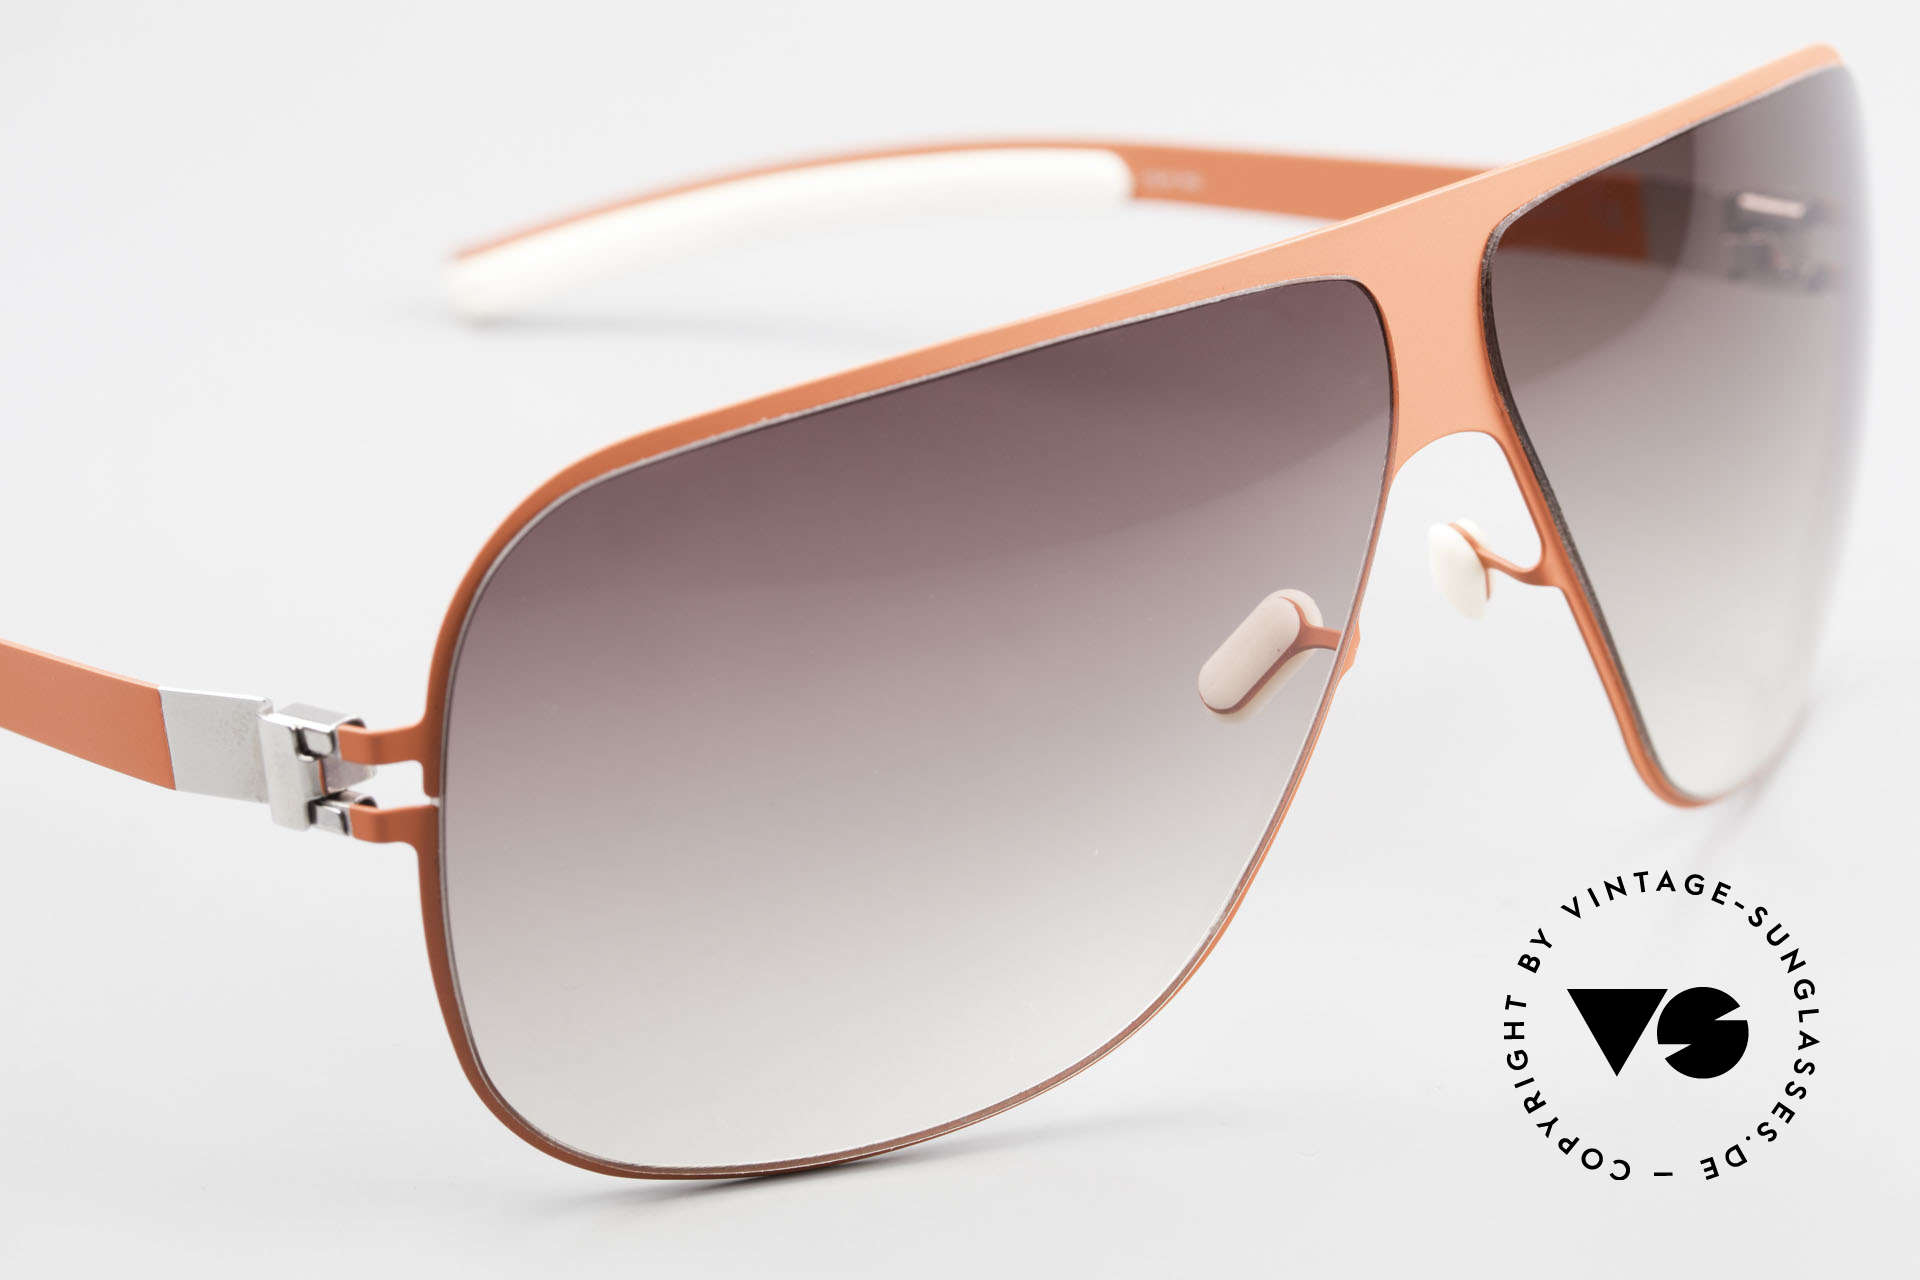 Mykita Hector Men's Aviator Sunglasses 2009's, top-notch quality, made in Germany (Berlin-Kreuzberg), Made for Men